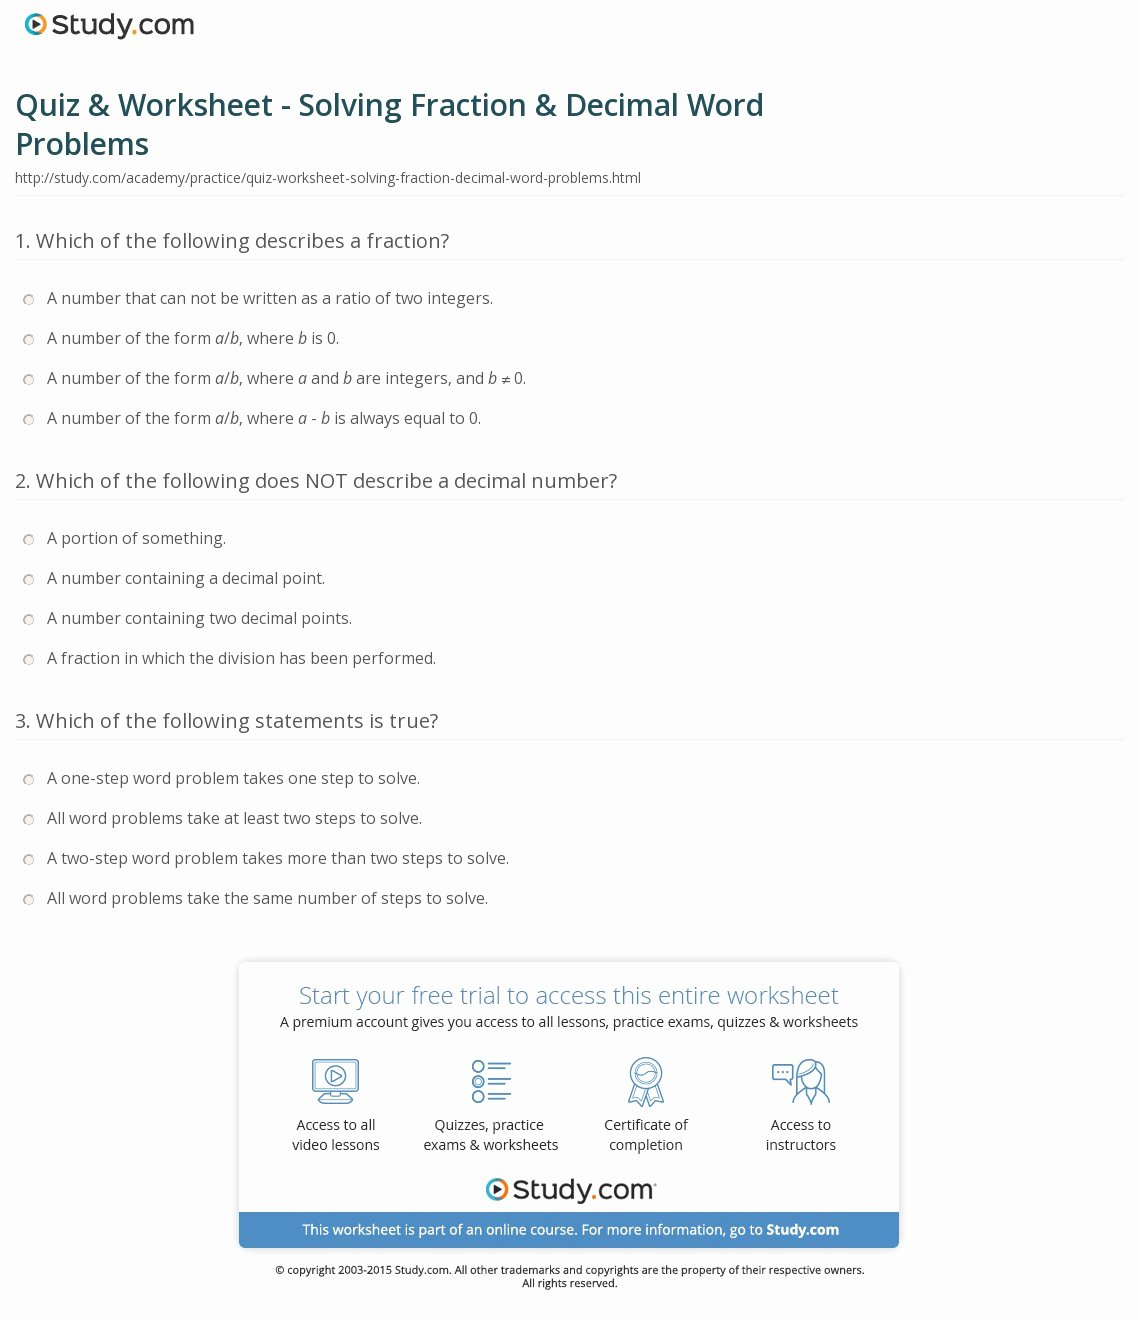 Decimal Word Problems Worksheet Fresh Quiz & Worksheet solving Fraction & Decimal Word